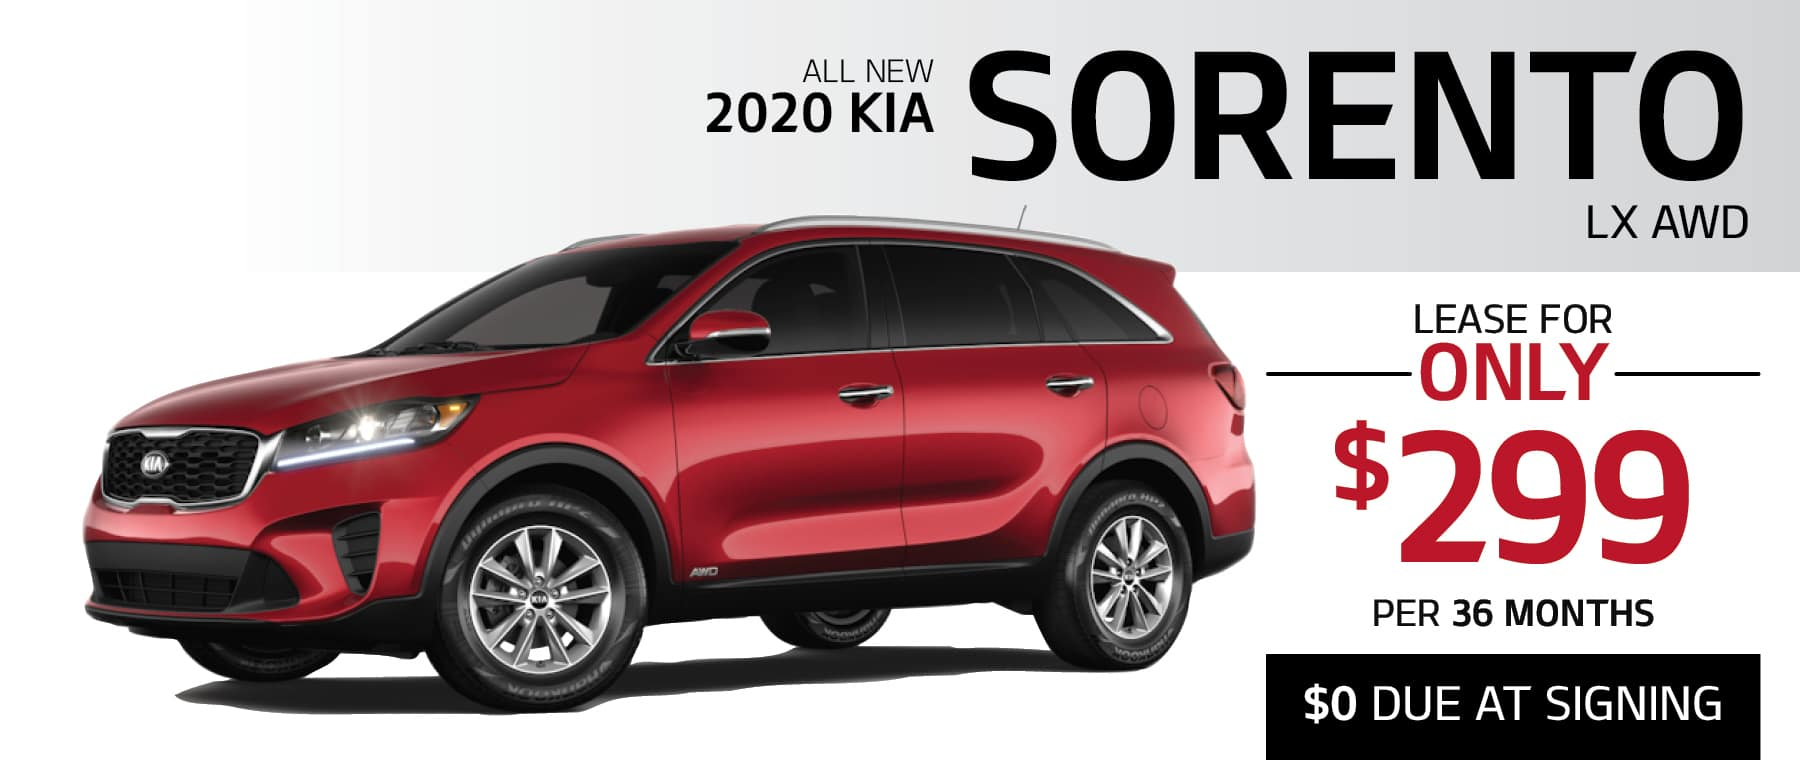 2020 Kia Sorento LX AWD 0% APR for up to 75 Months or lease for $299 per month with $0 due at signing